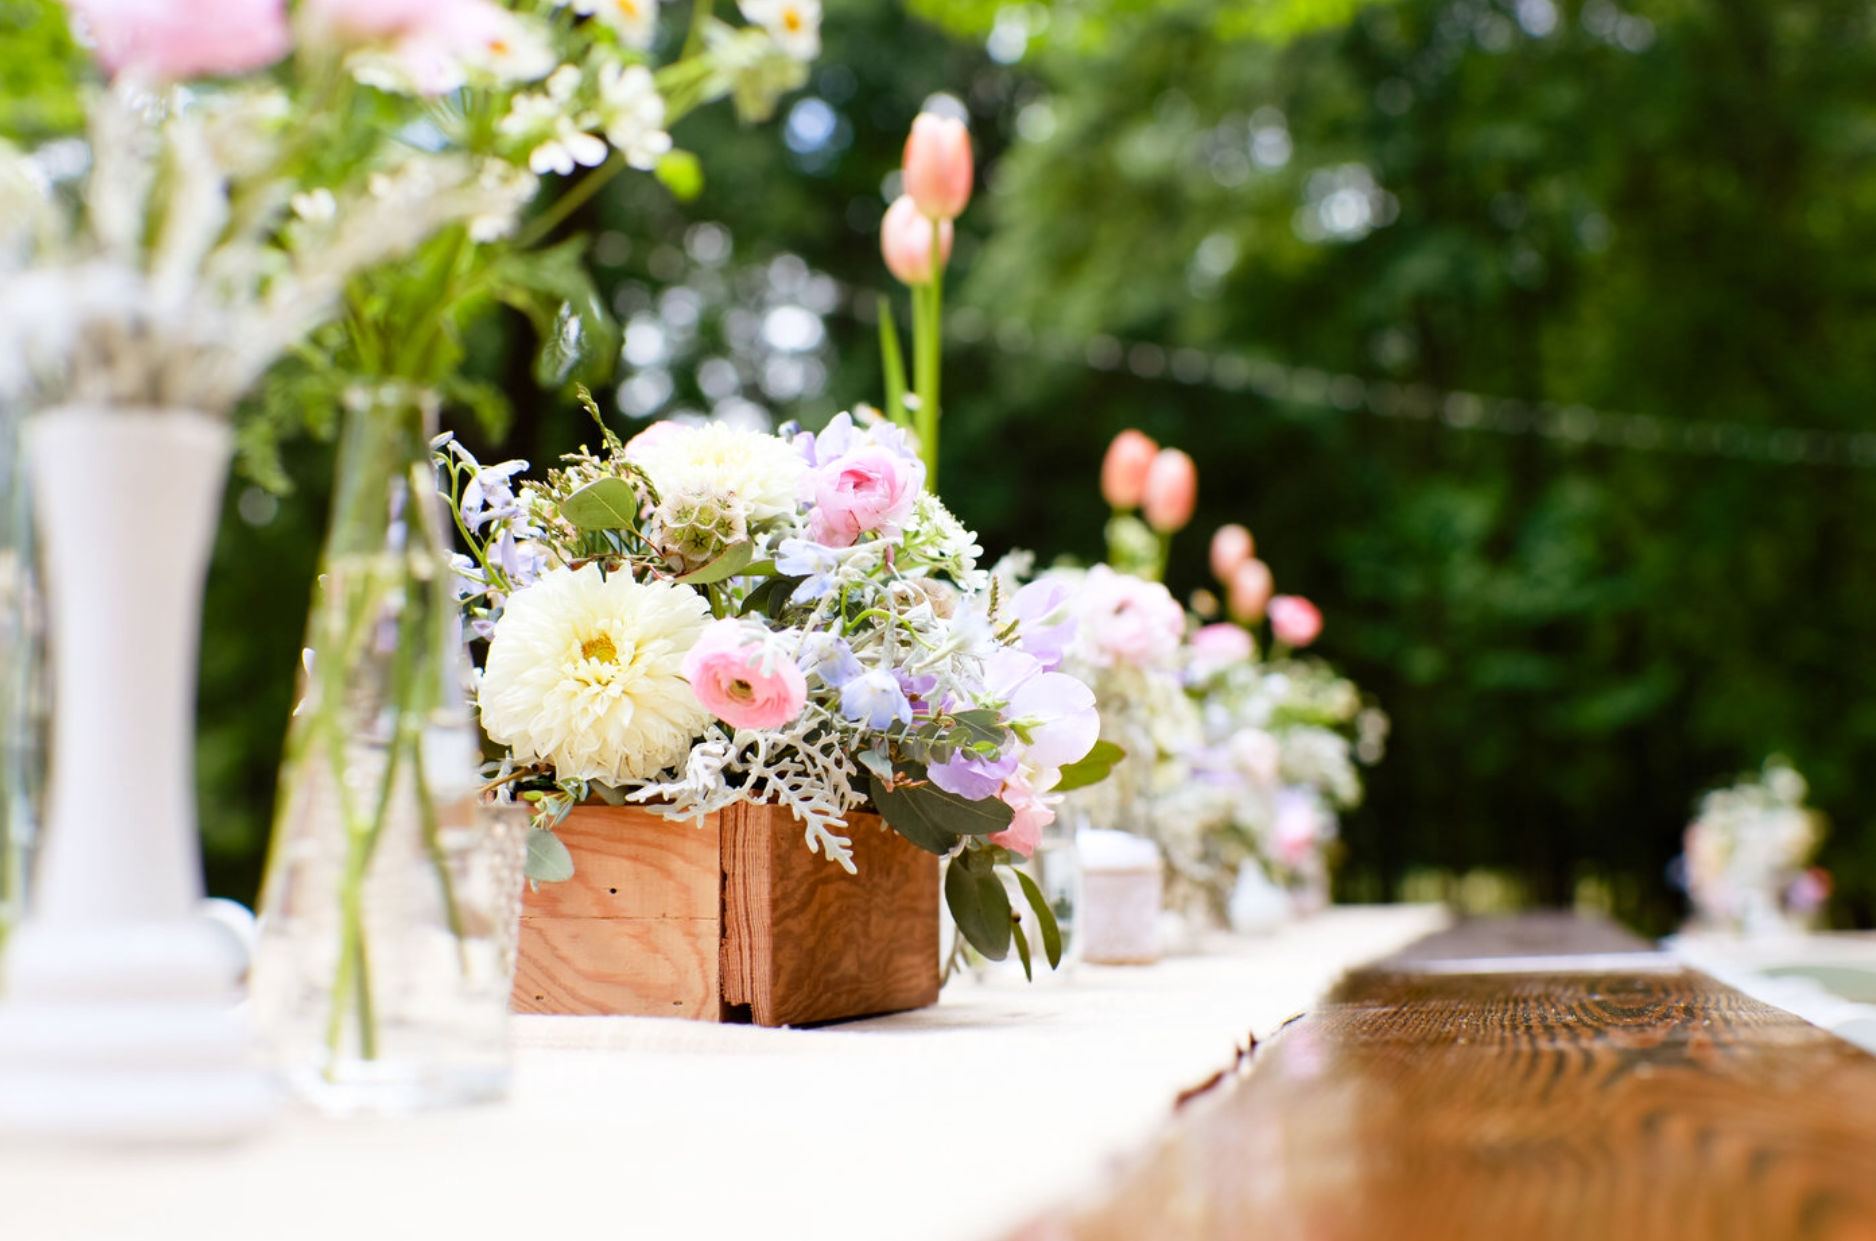 Southern Spring Wedding Reception - Centerpiece Ideas - Farmhouse Tables